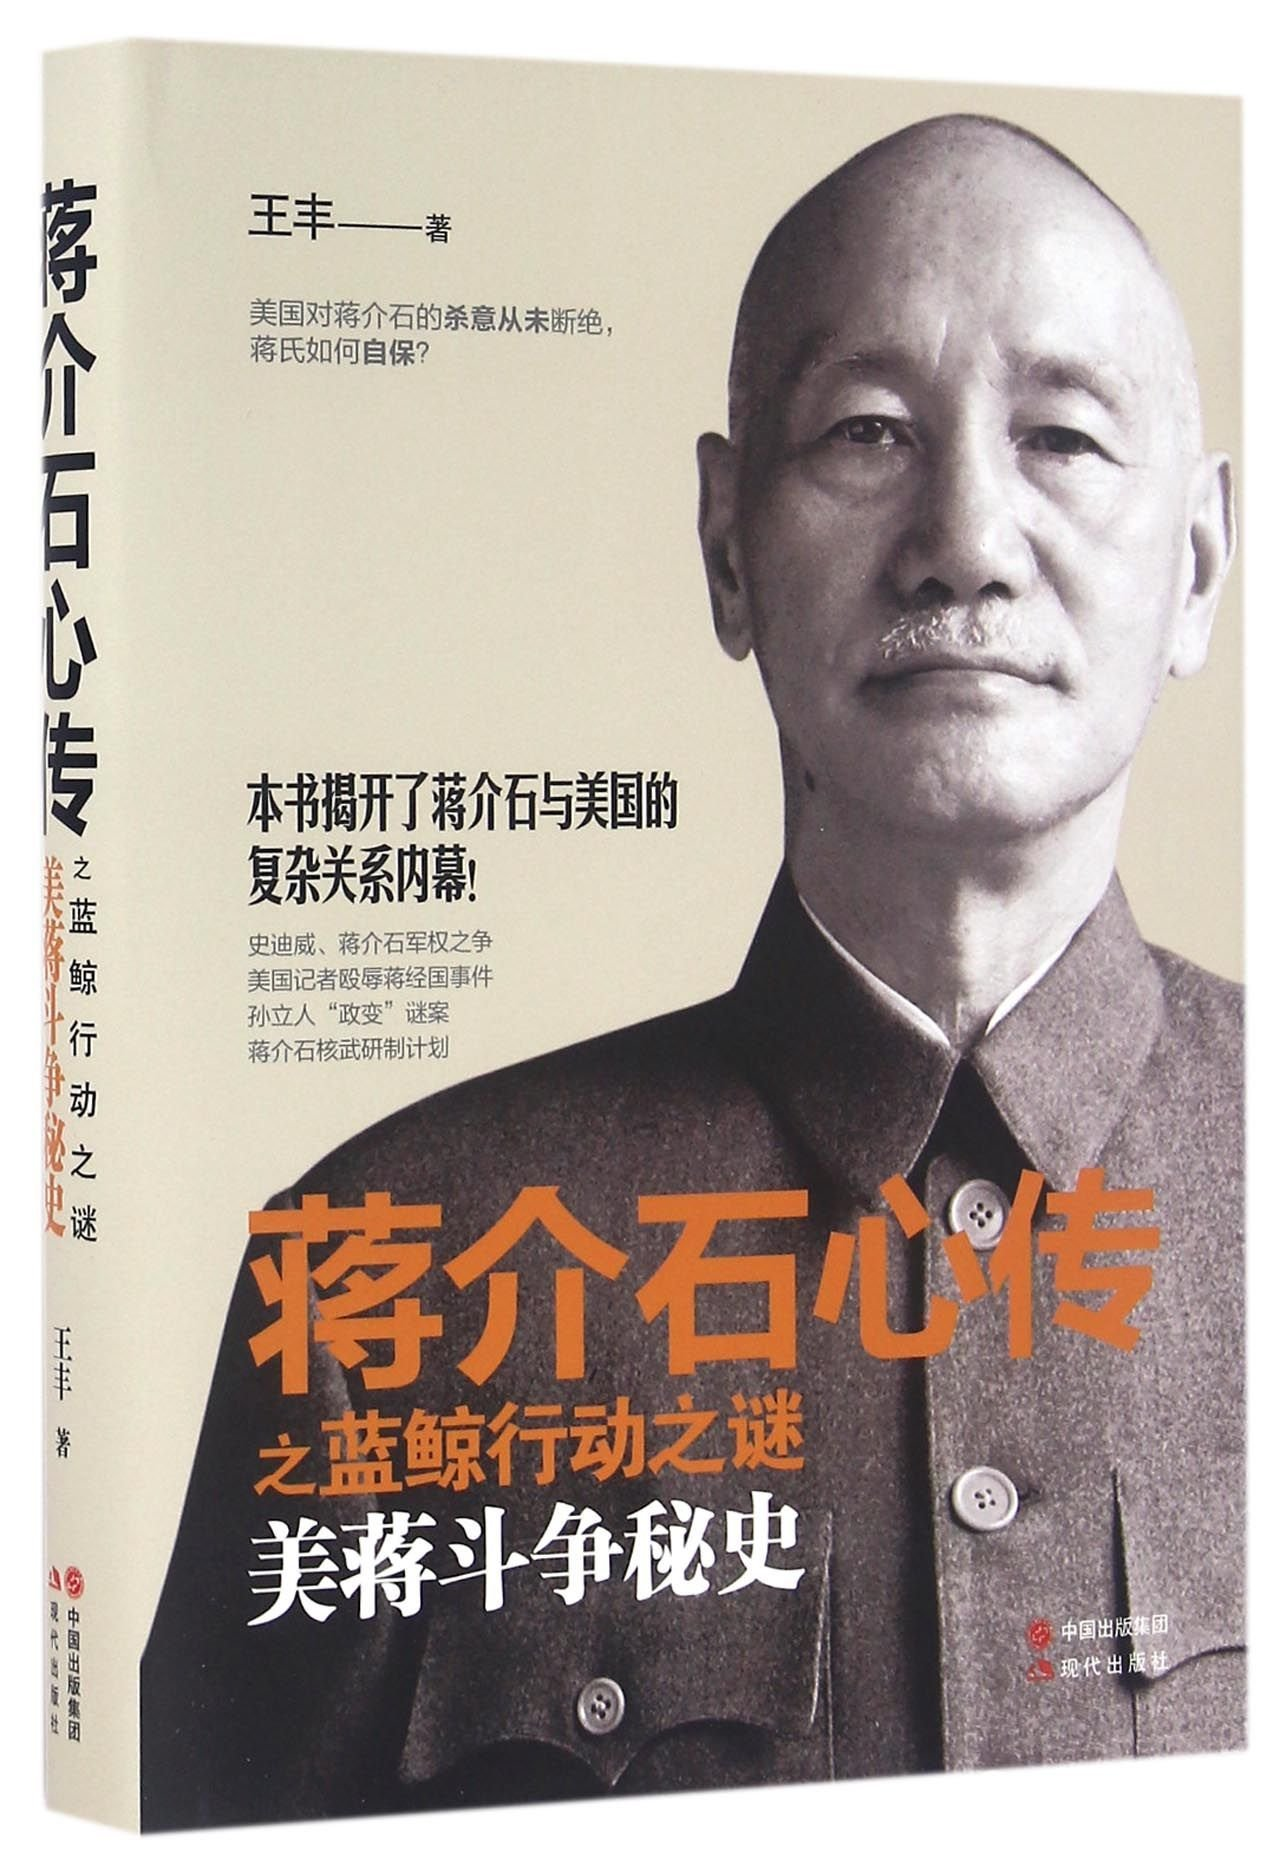 Chiang Kai-shek: The Secret of the Blue Whale Action (Hardcover) (Chinese Edition) PDF